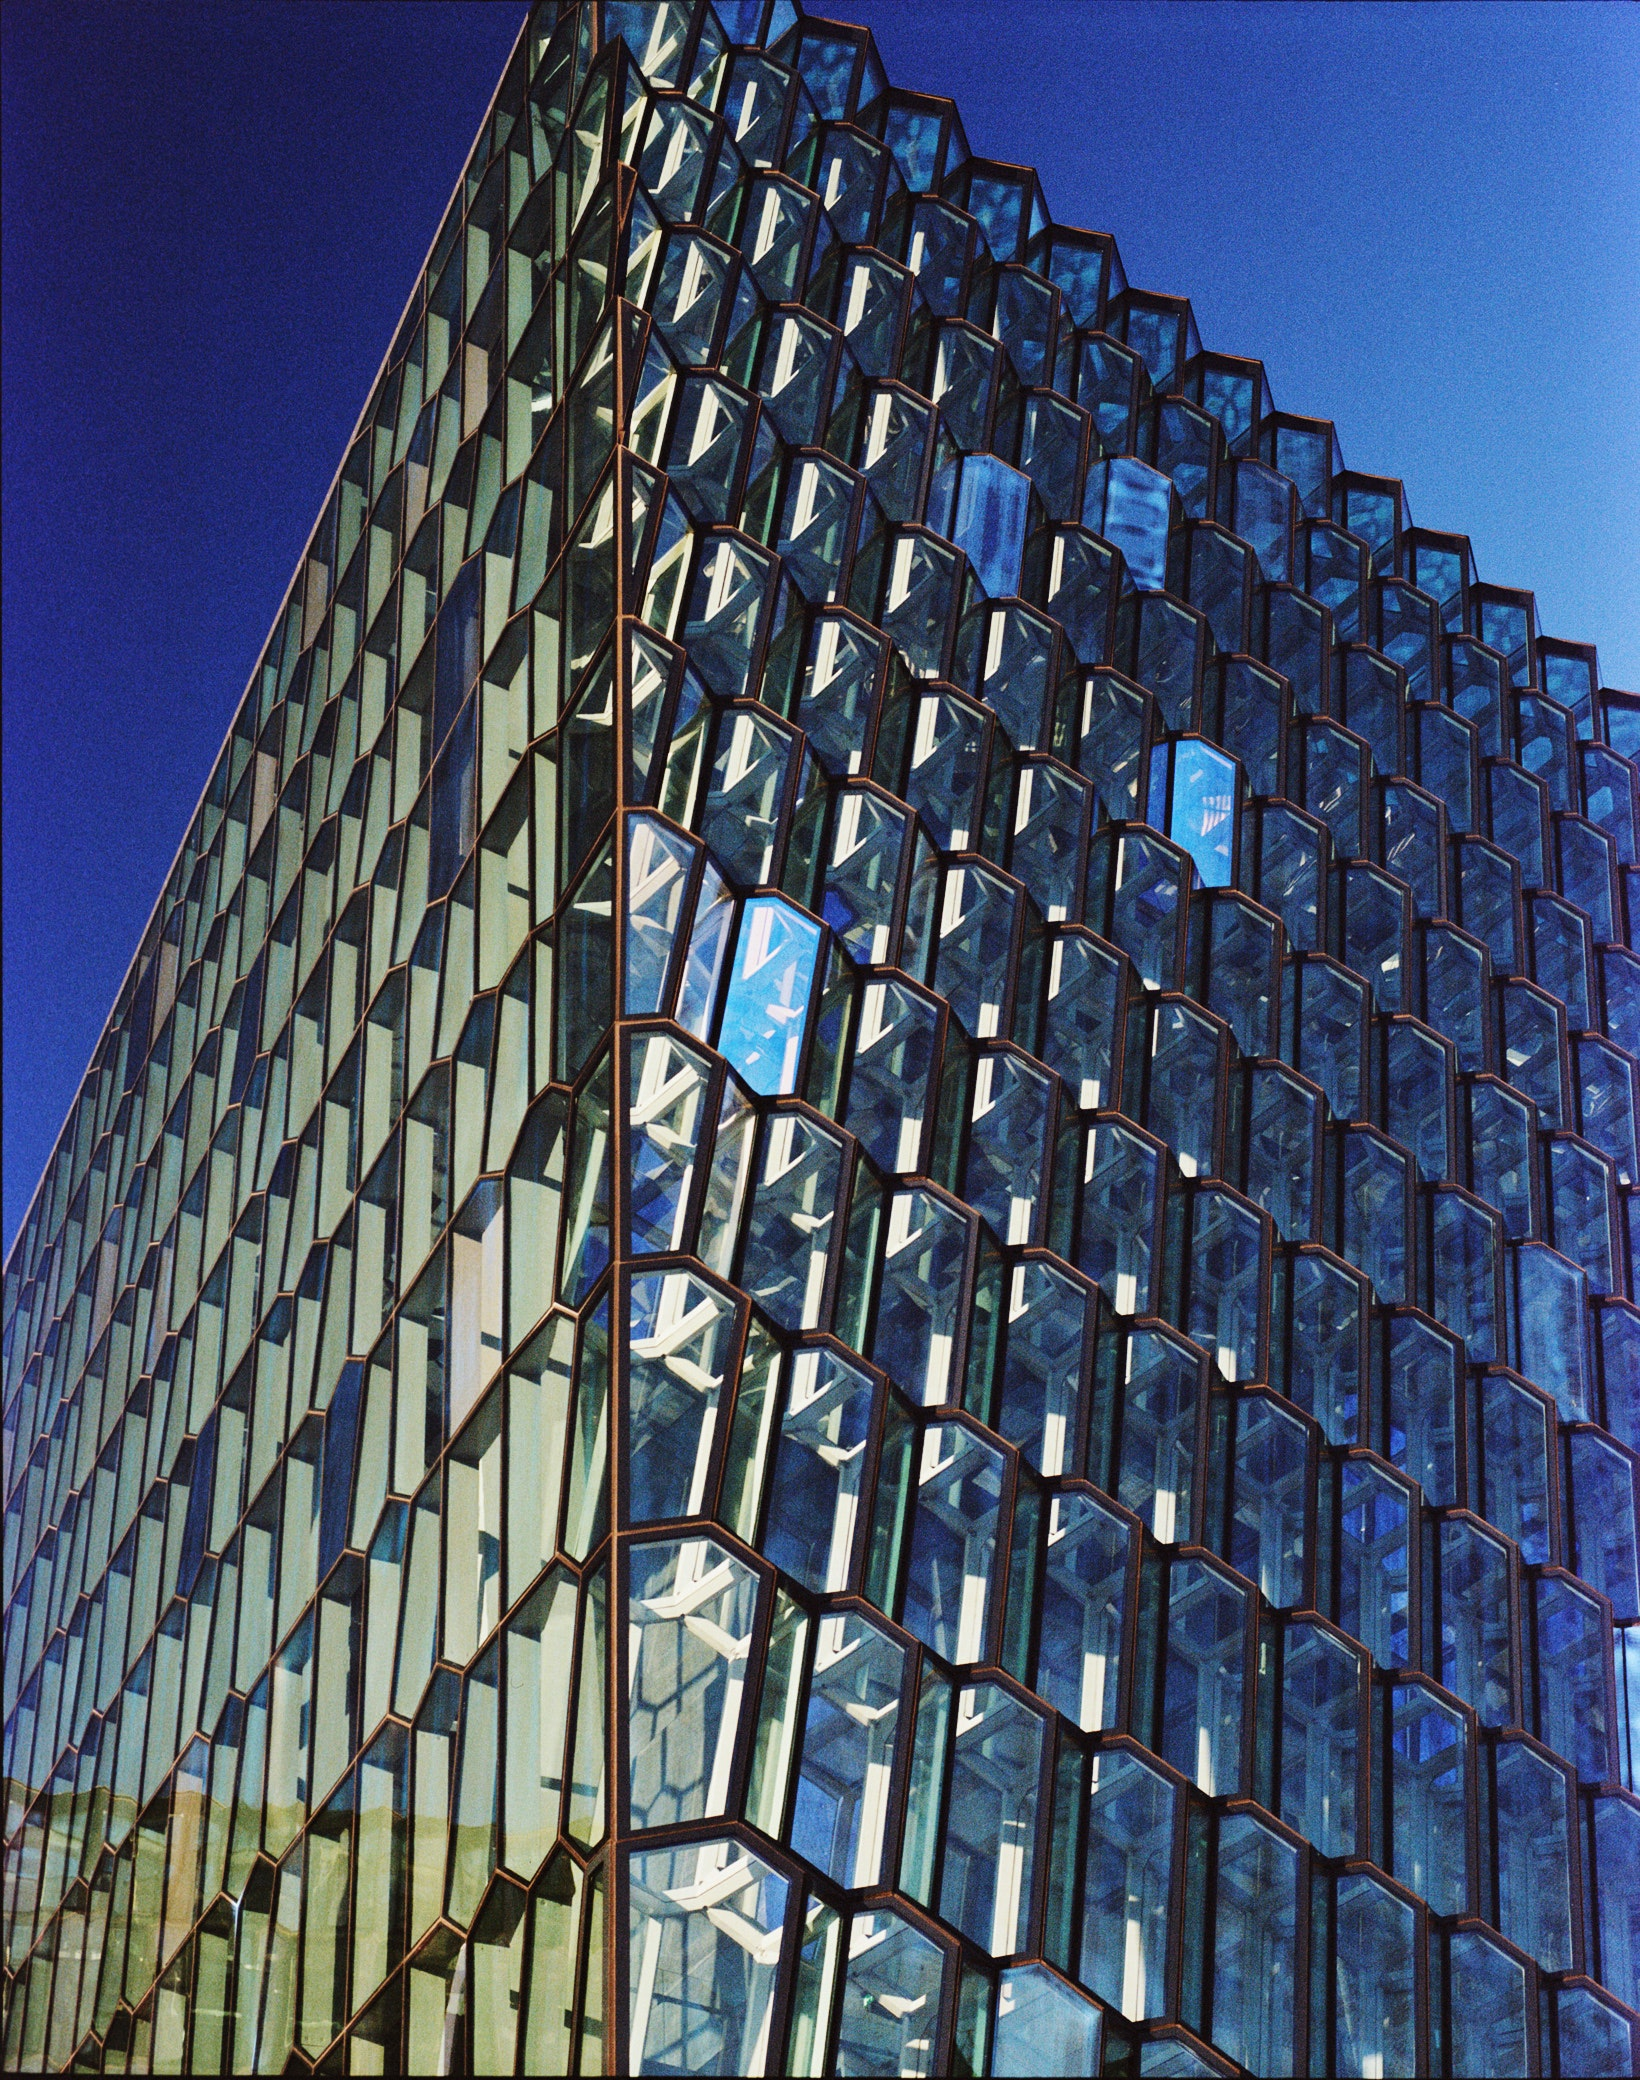 Danish-Icelandic artist Olafur Eliasson collaborated on the design of Reykjavík's Harpa concert hall.